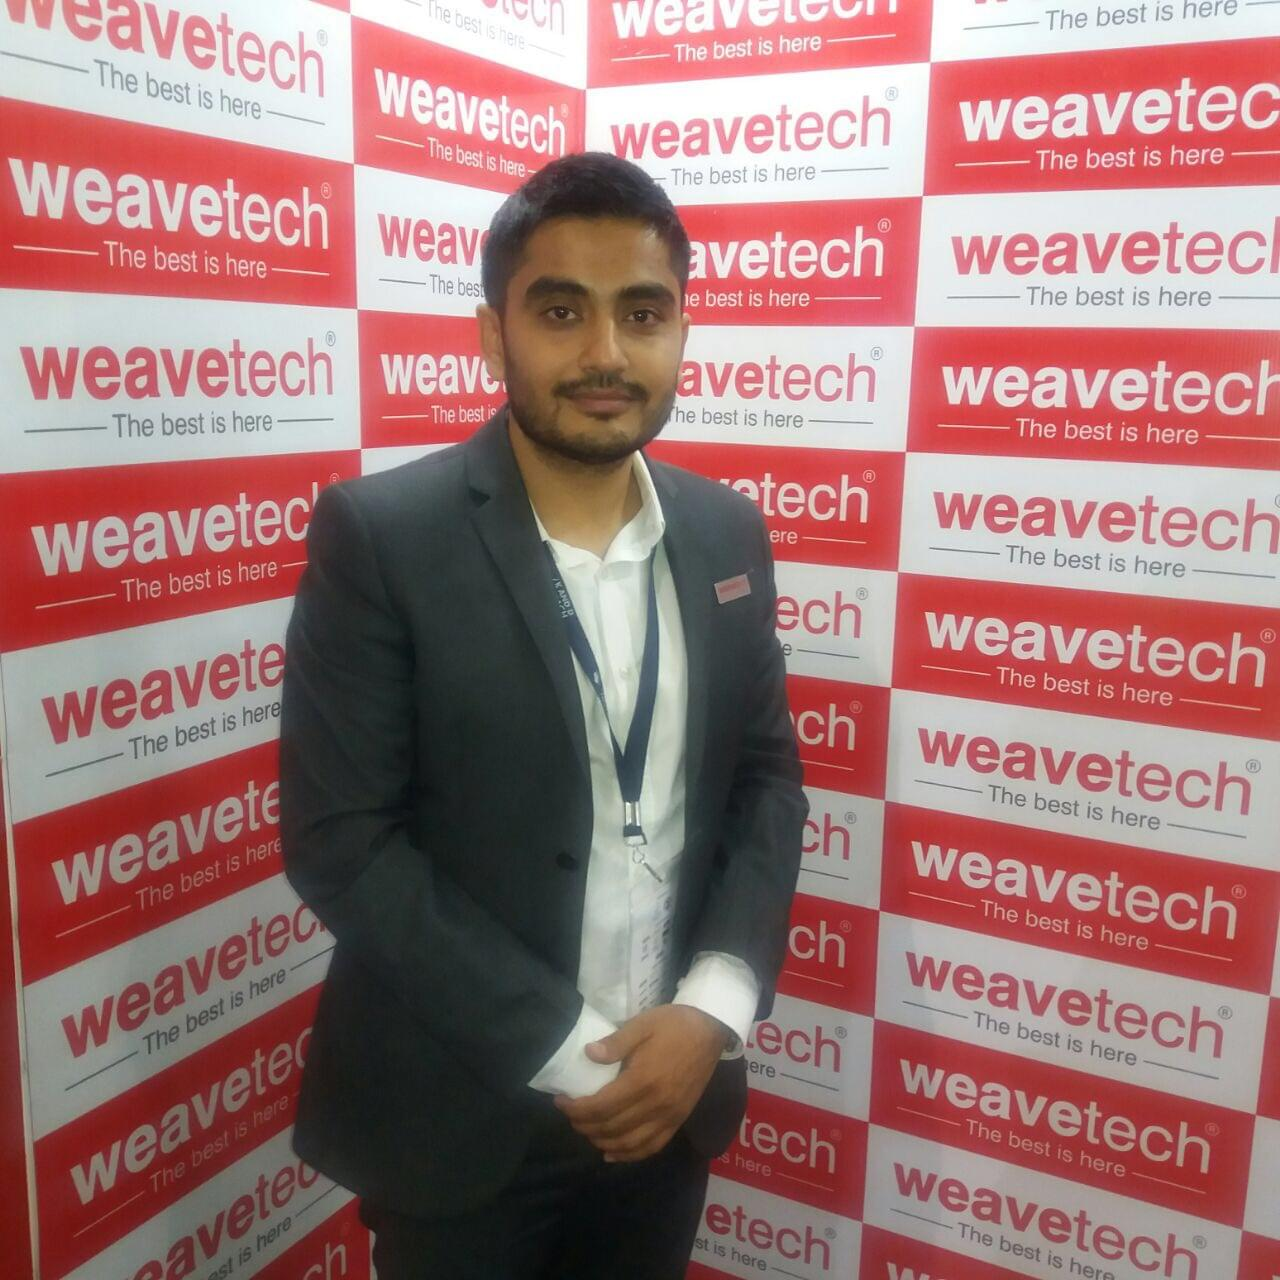 Alidhara Weavetech spend around 7% of our revenues in R&D